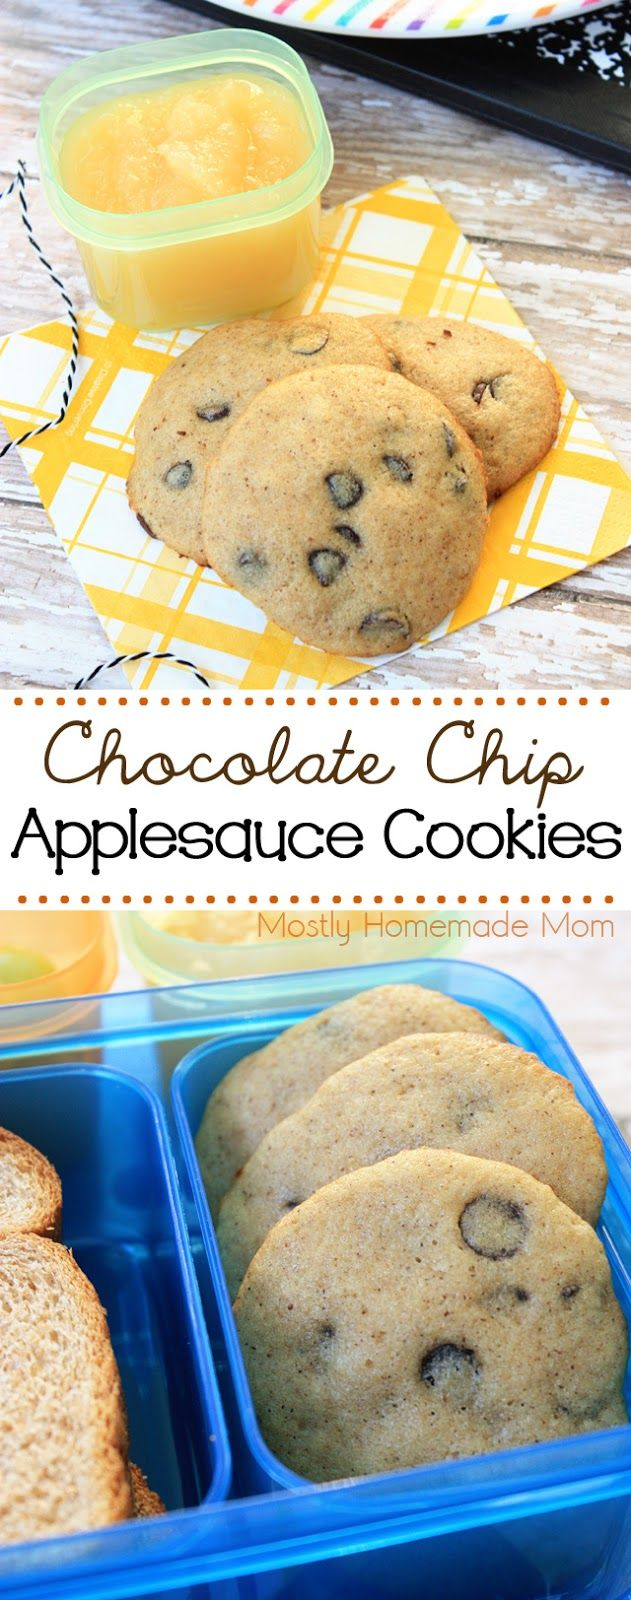 Chocolate Chip Applesauce Cookies - These are the perfect snack or treat for tucking into a lunch box this fall! #ad with @Rubbermaid